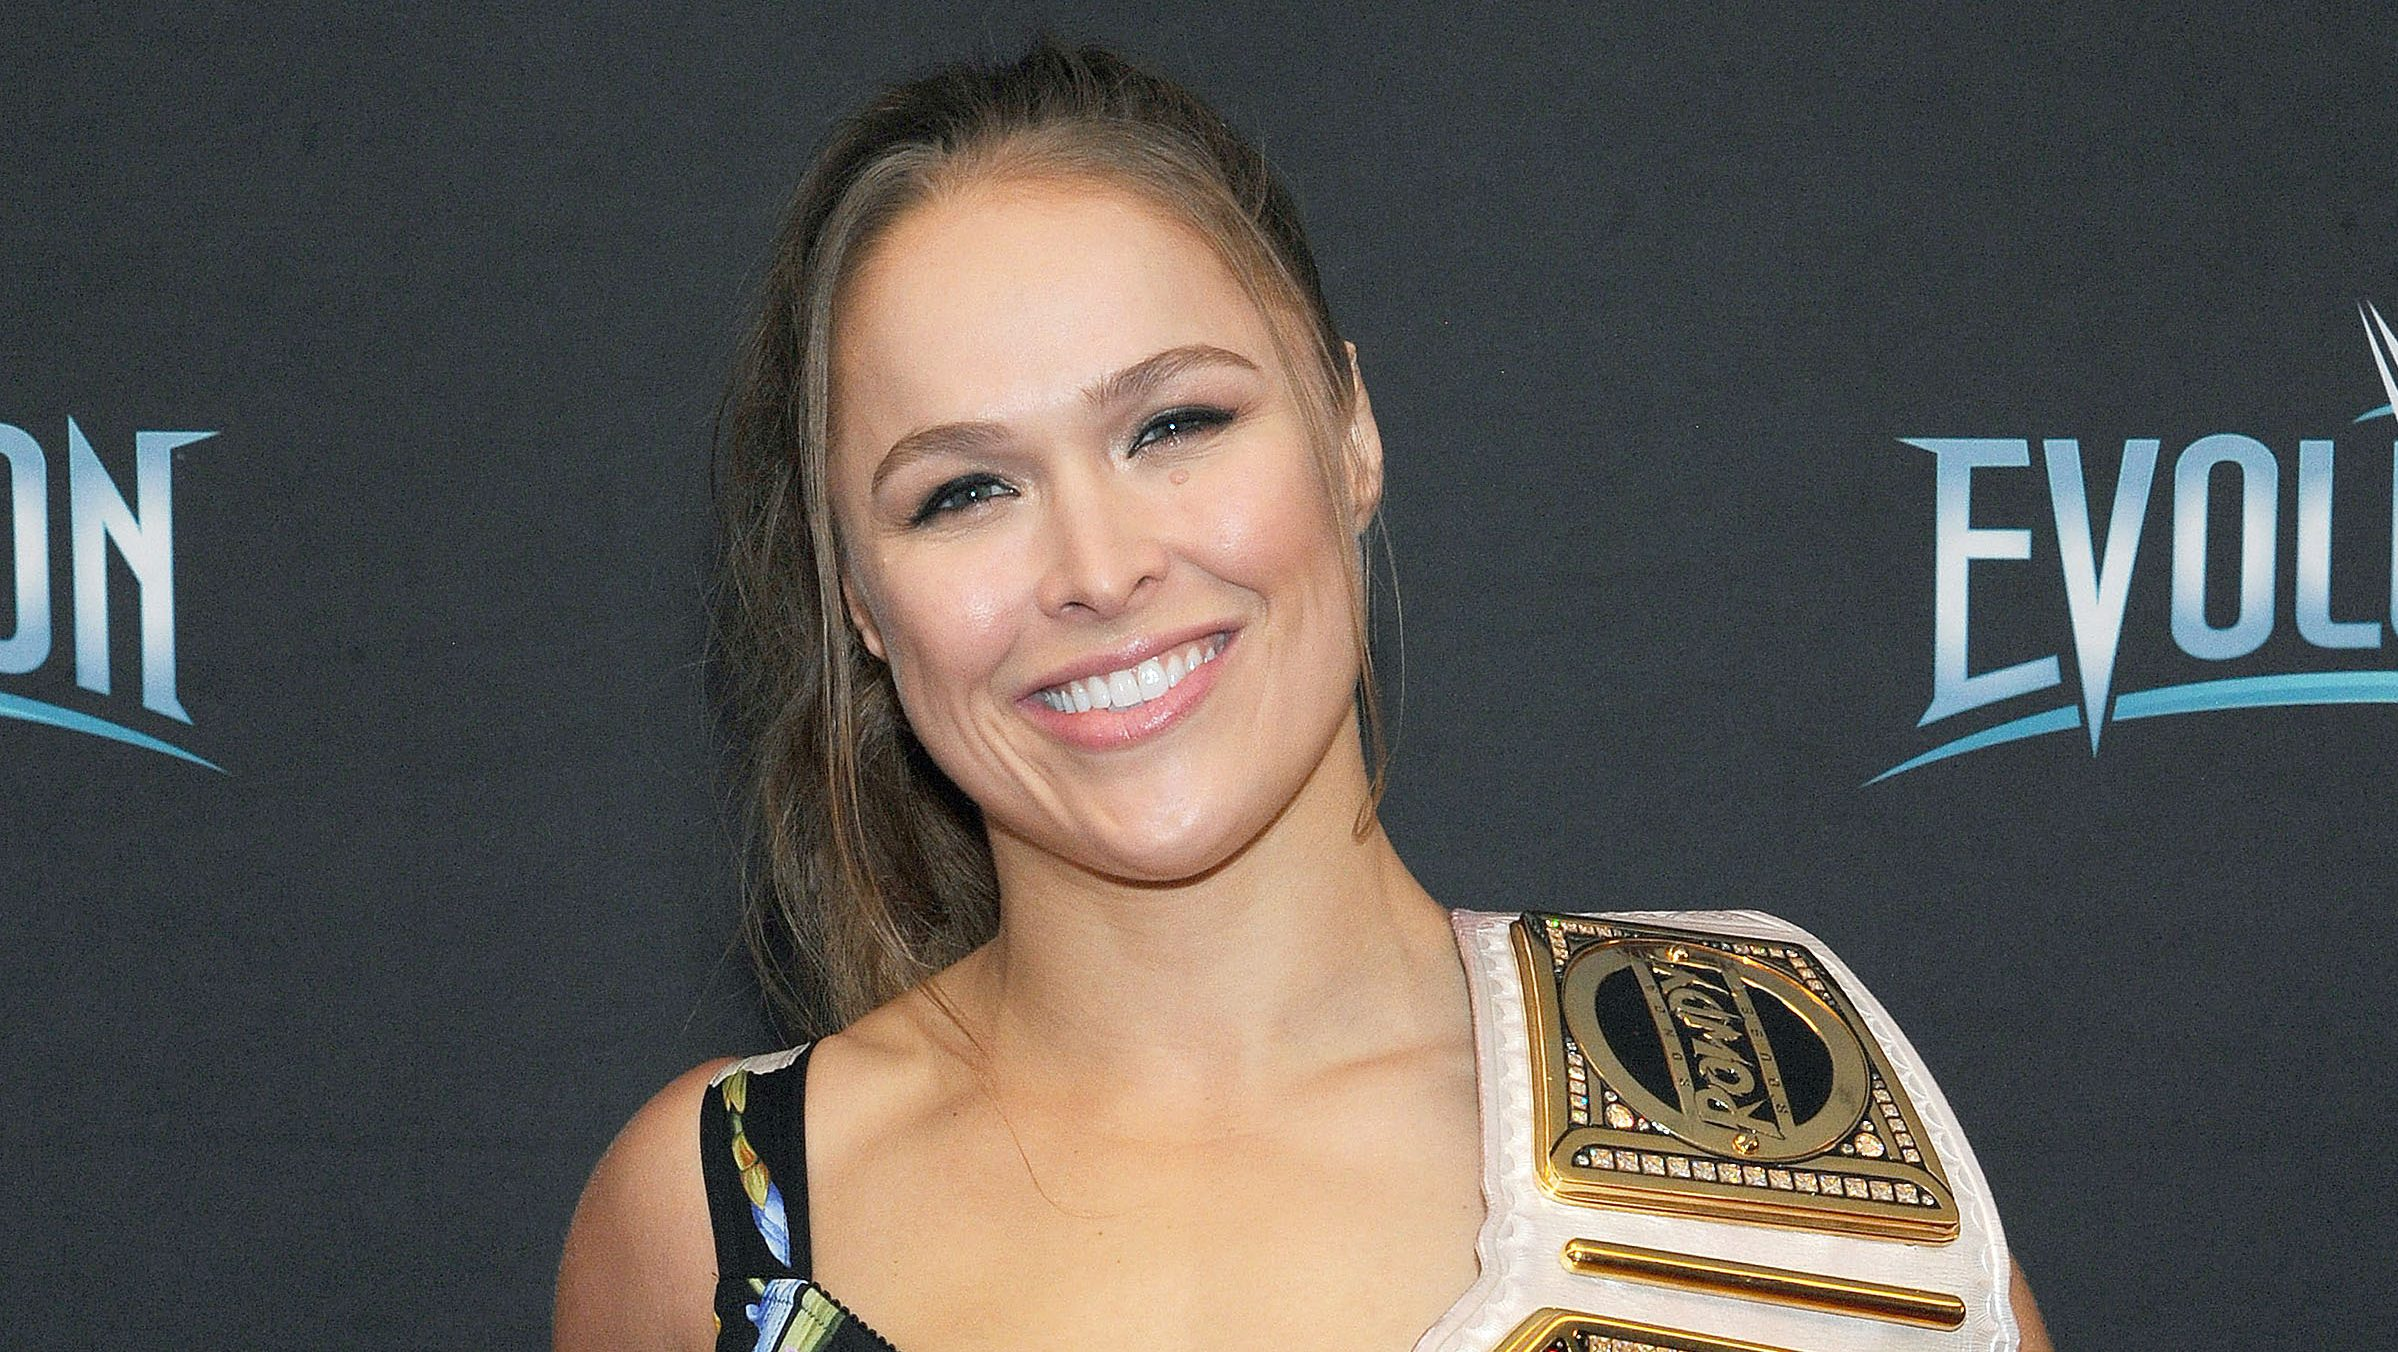 Ronda Rousey Biography, Facts & Life Story Updated 2021